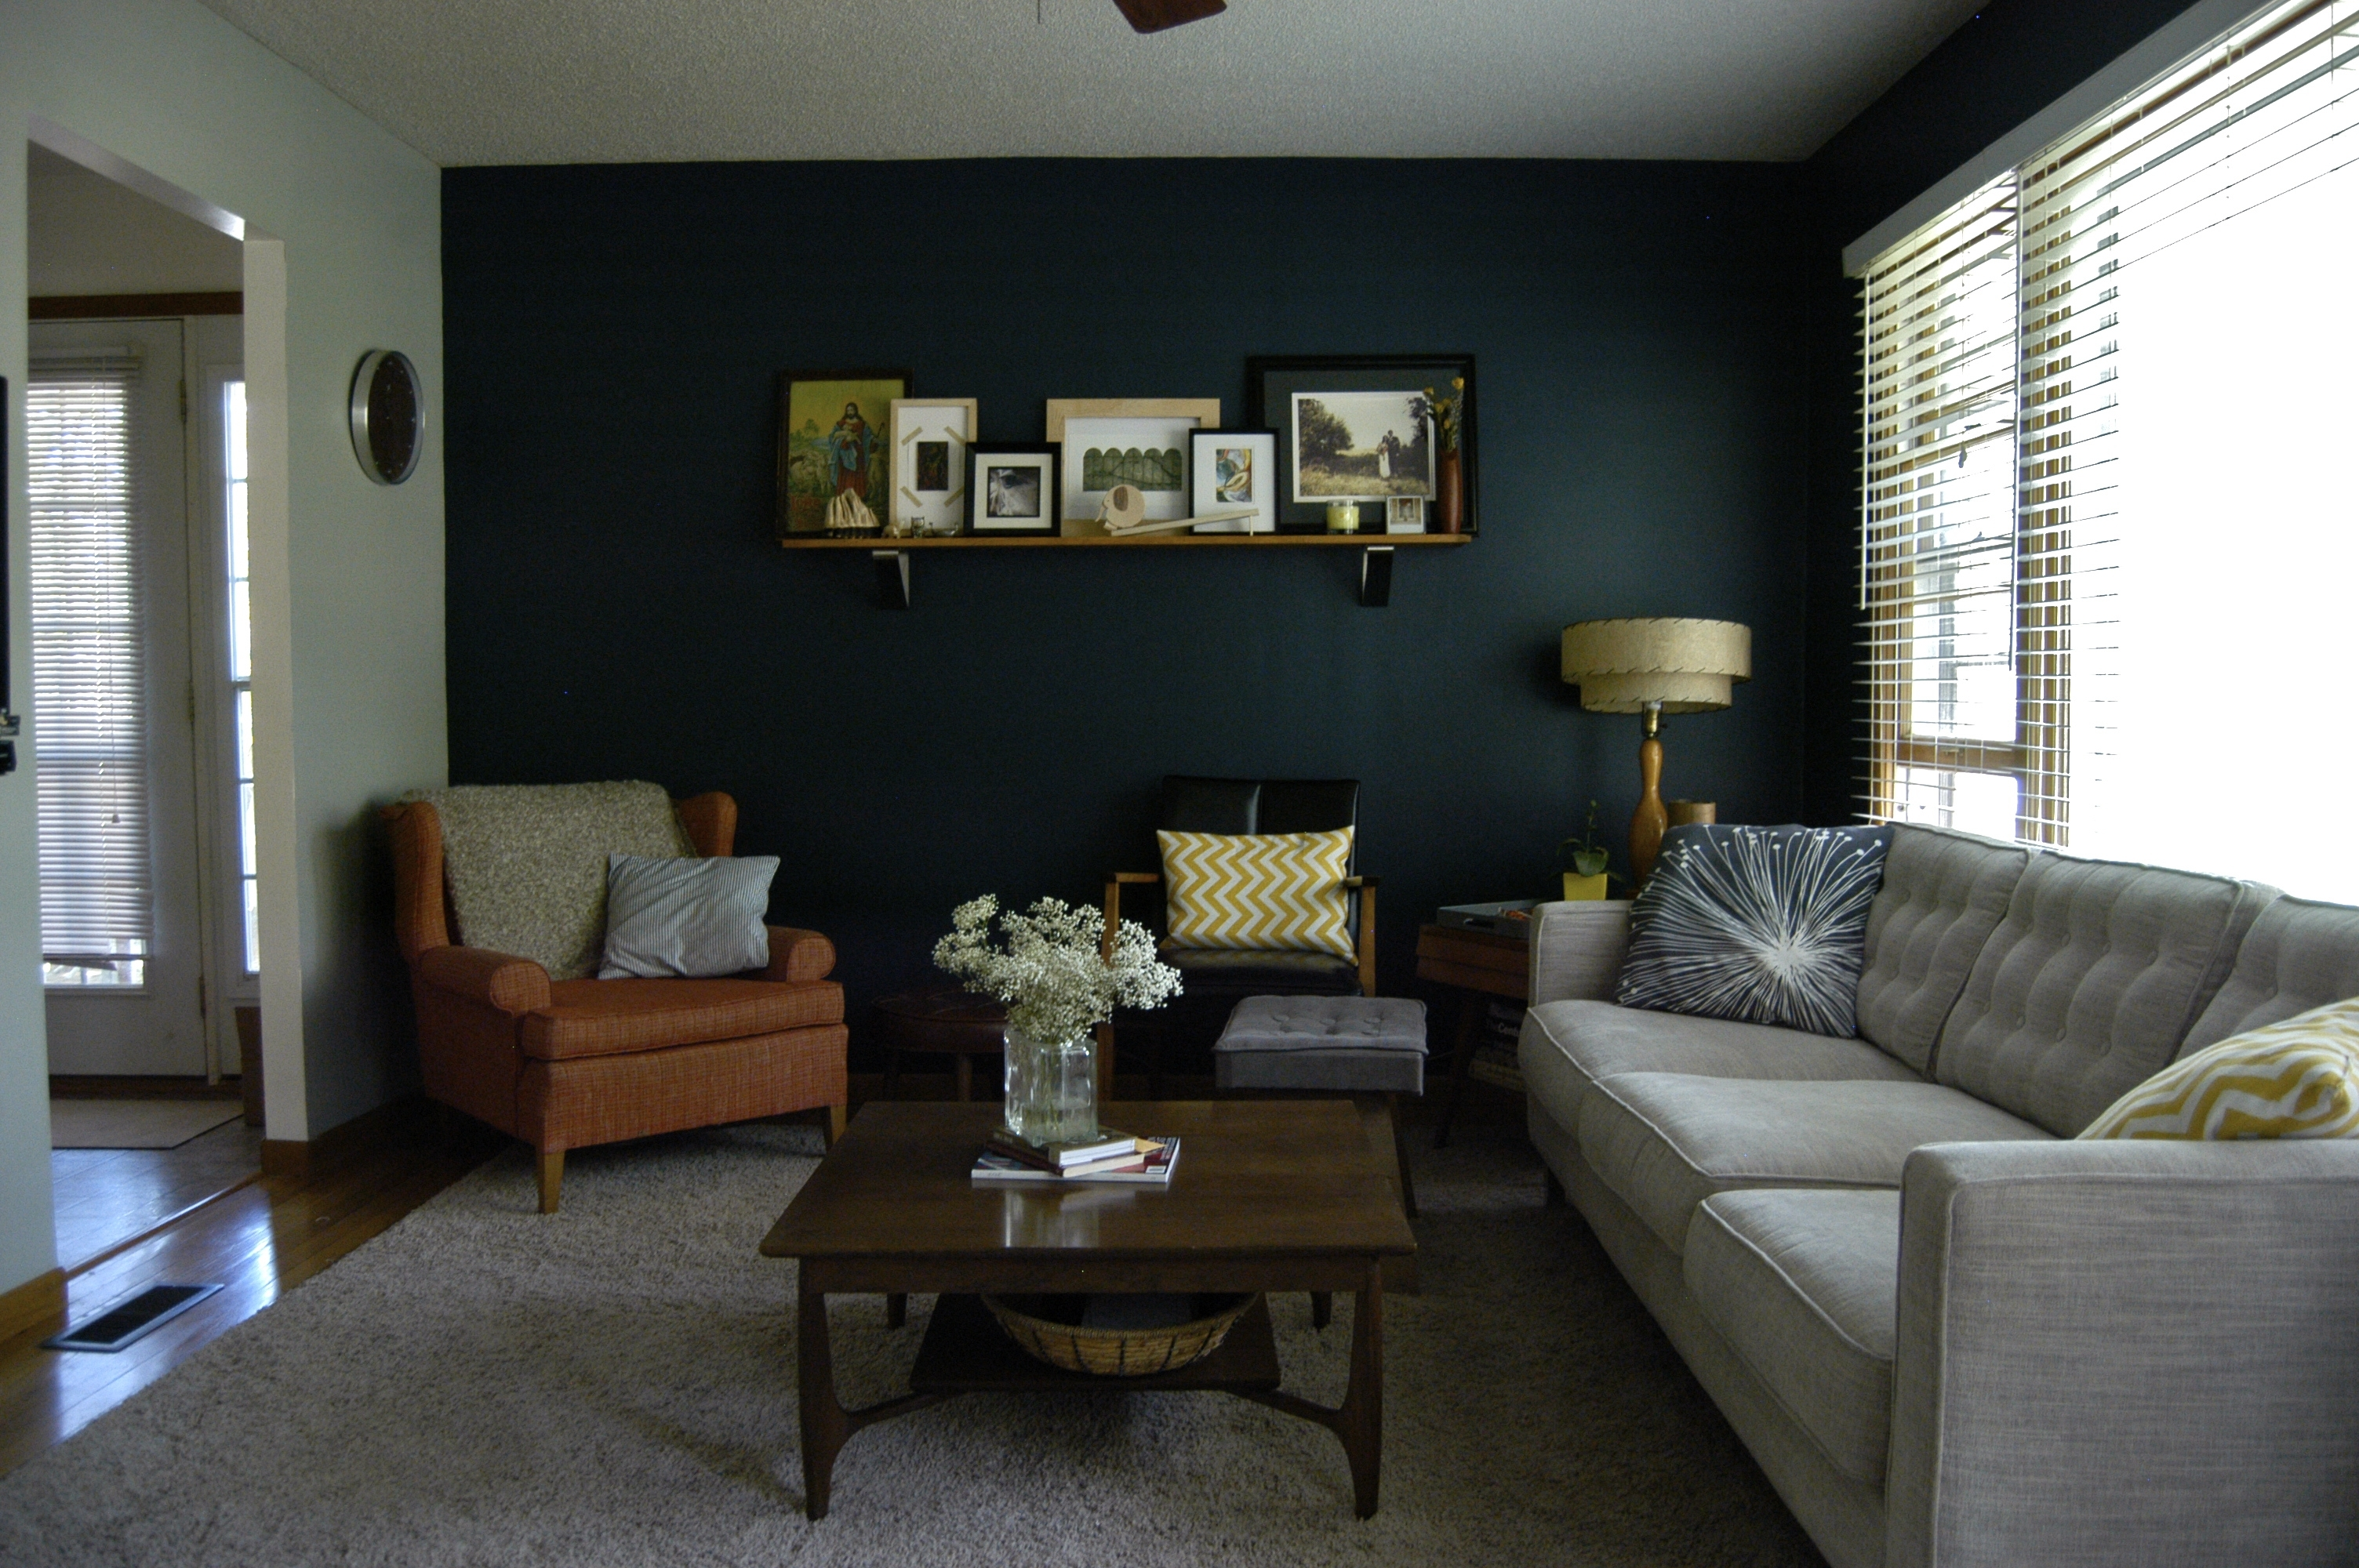 Our New Navy Accent Wall! The Other Walls Are A Medium Gray With Regard To 2017 Navy Wall Accents (View 11 of 15)